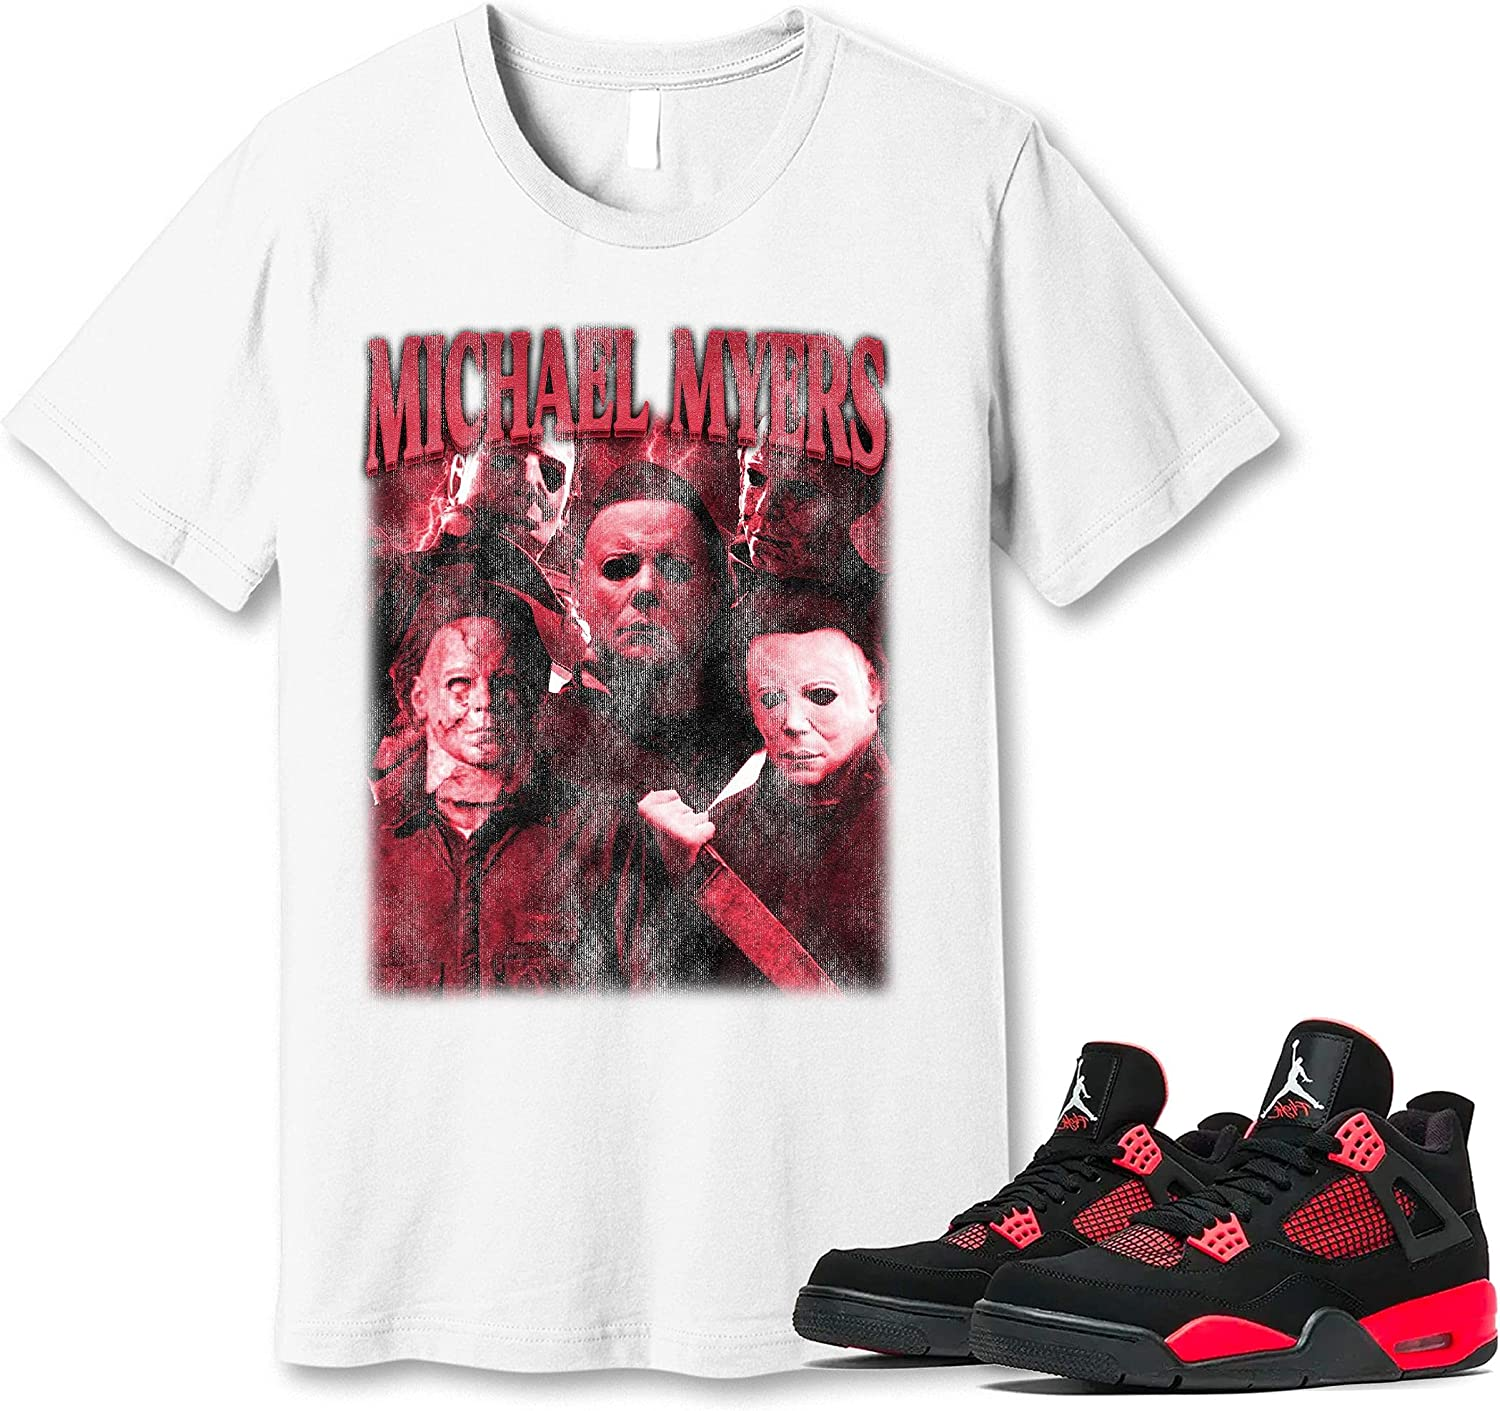 Fixed price for sale #Michael #Myer T-Shirt to Match Jordan Sneaker Snk Credence Red Thunder 4